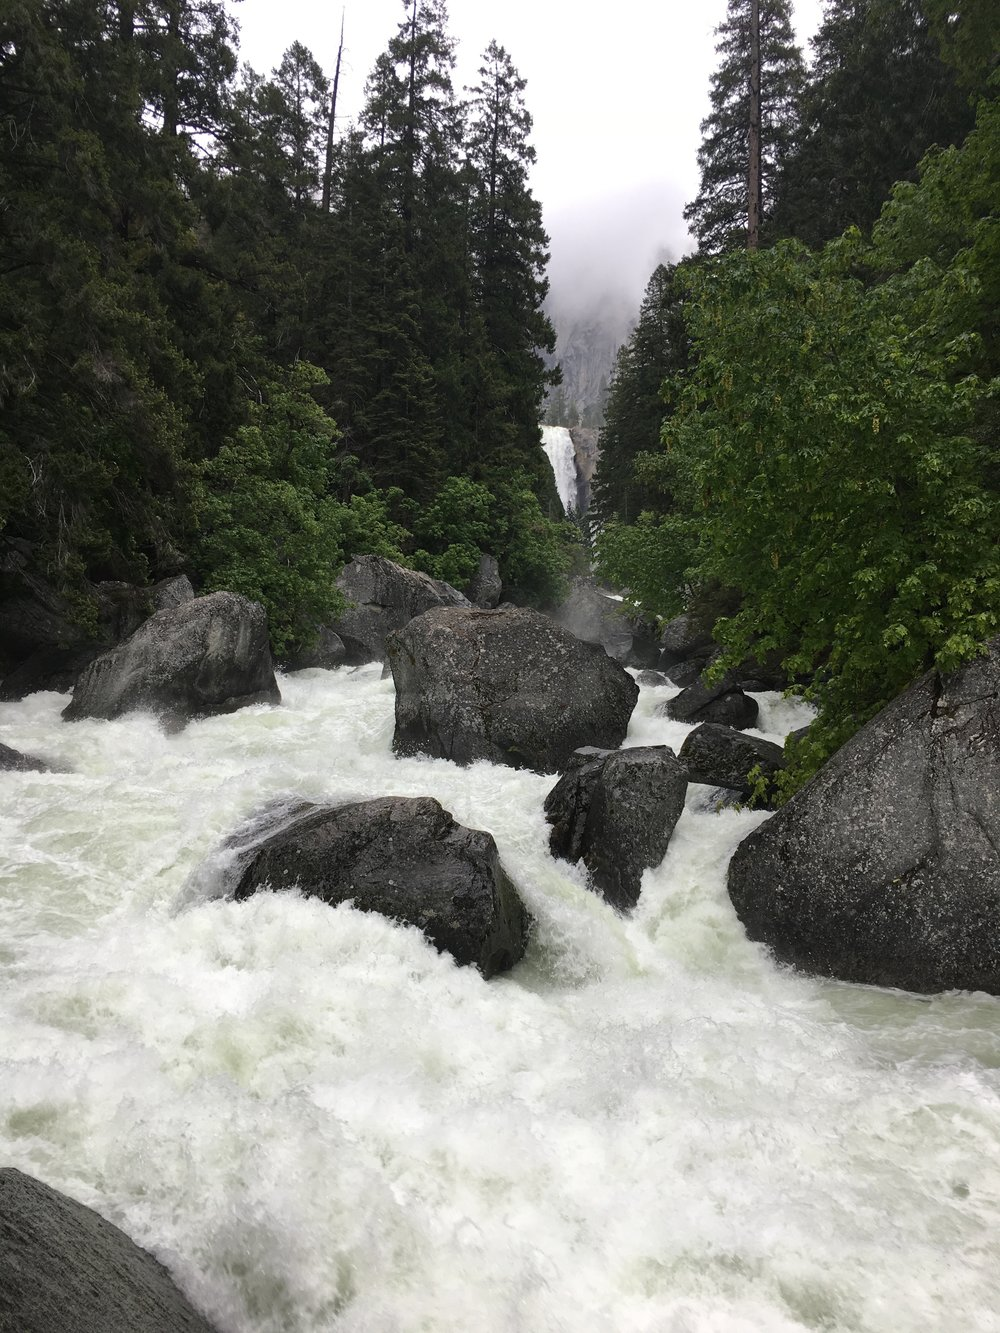 View down the Merced River from Vernal Falls footbridge